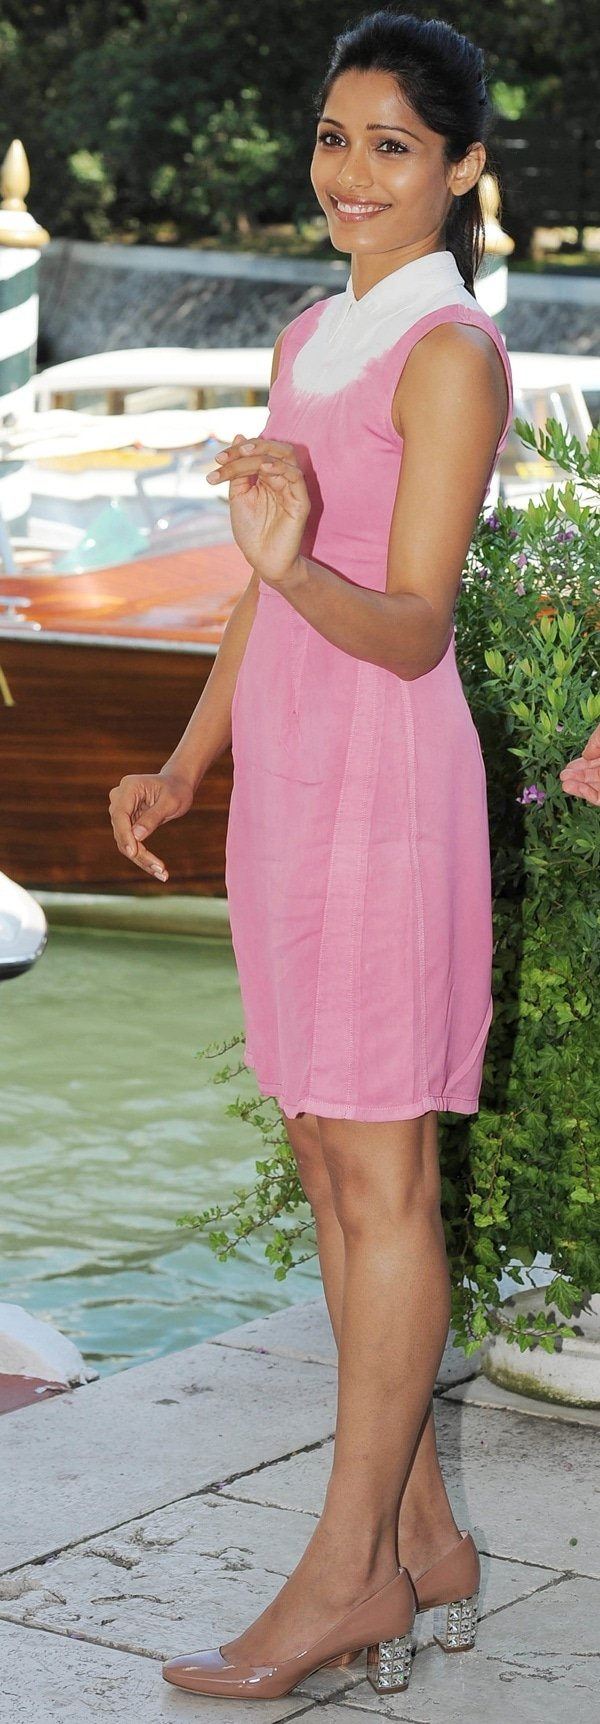 Freida Pinto was adorable in a cute pink-and-white sundress